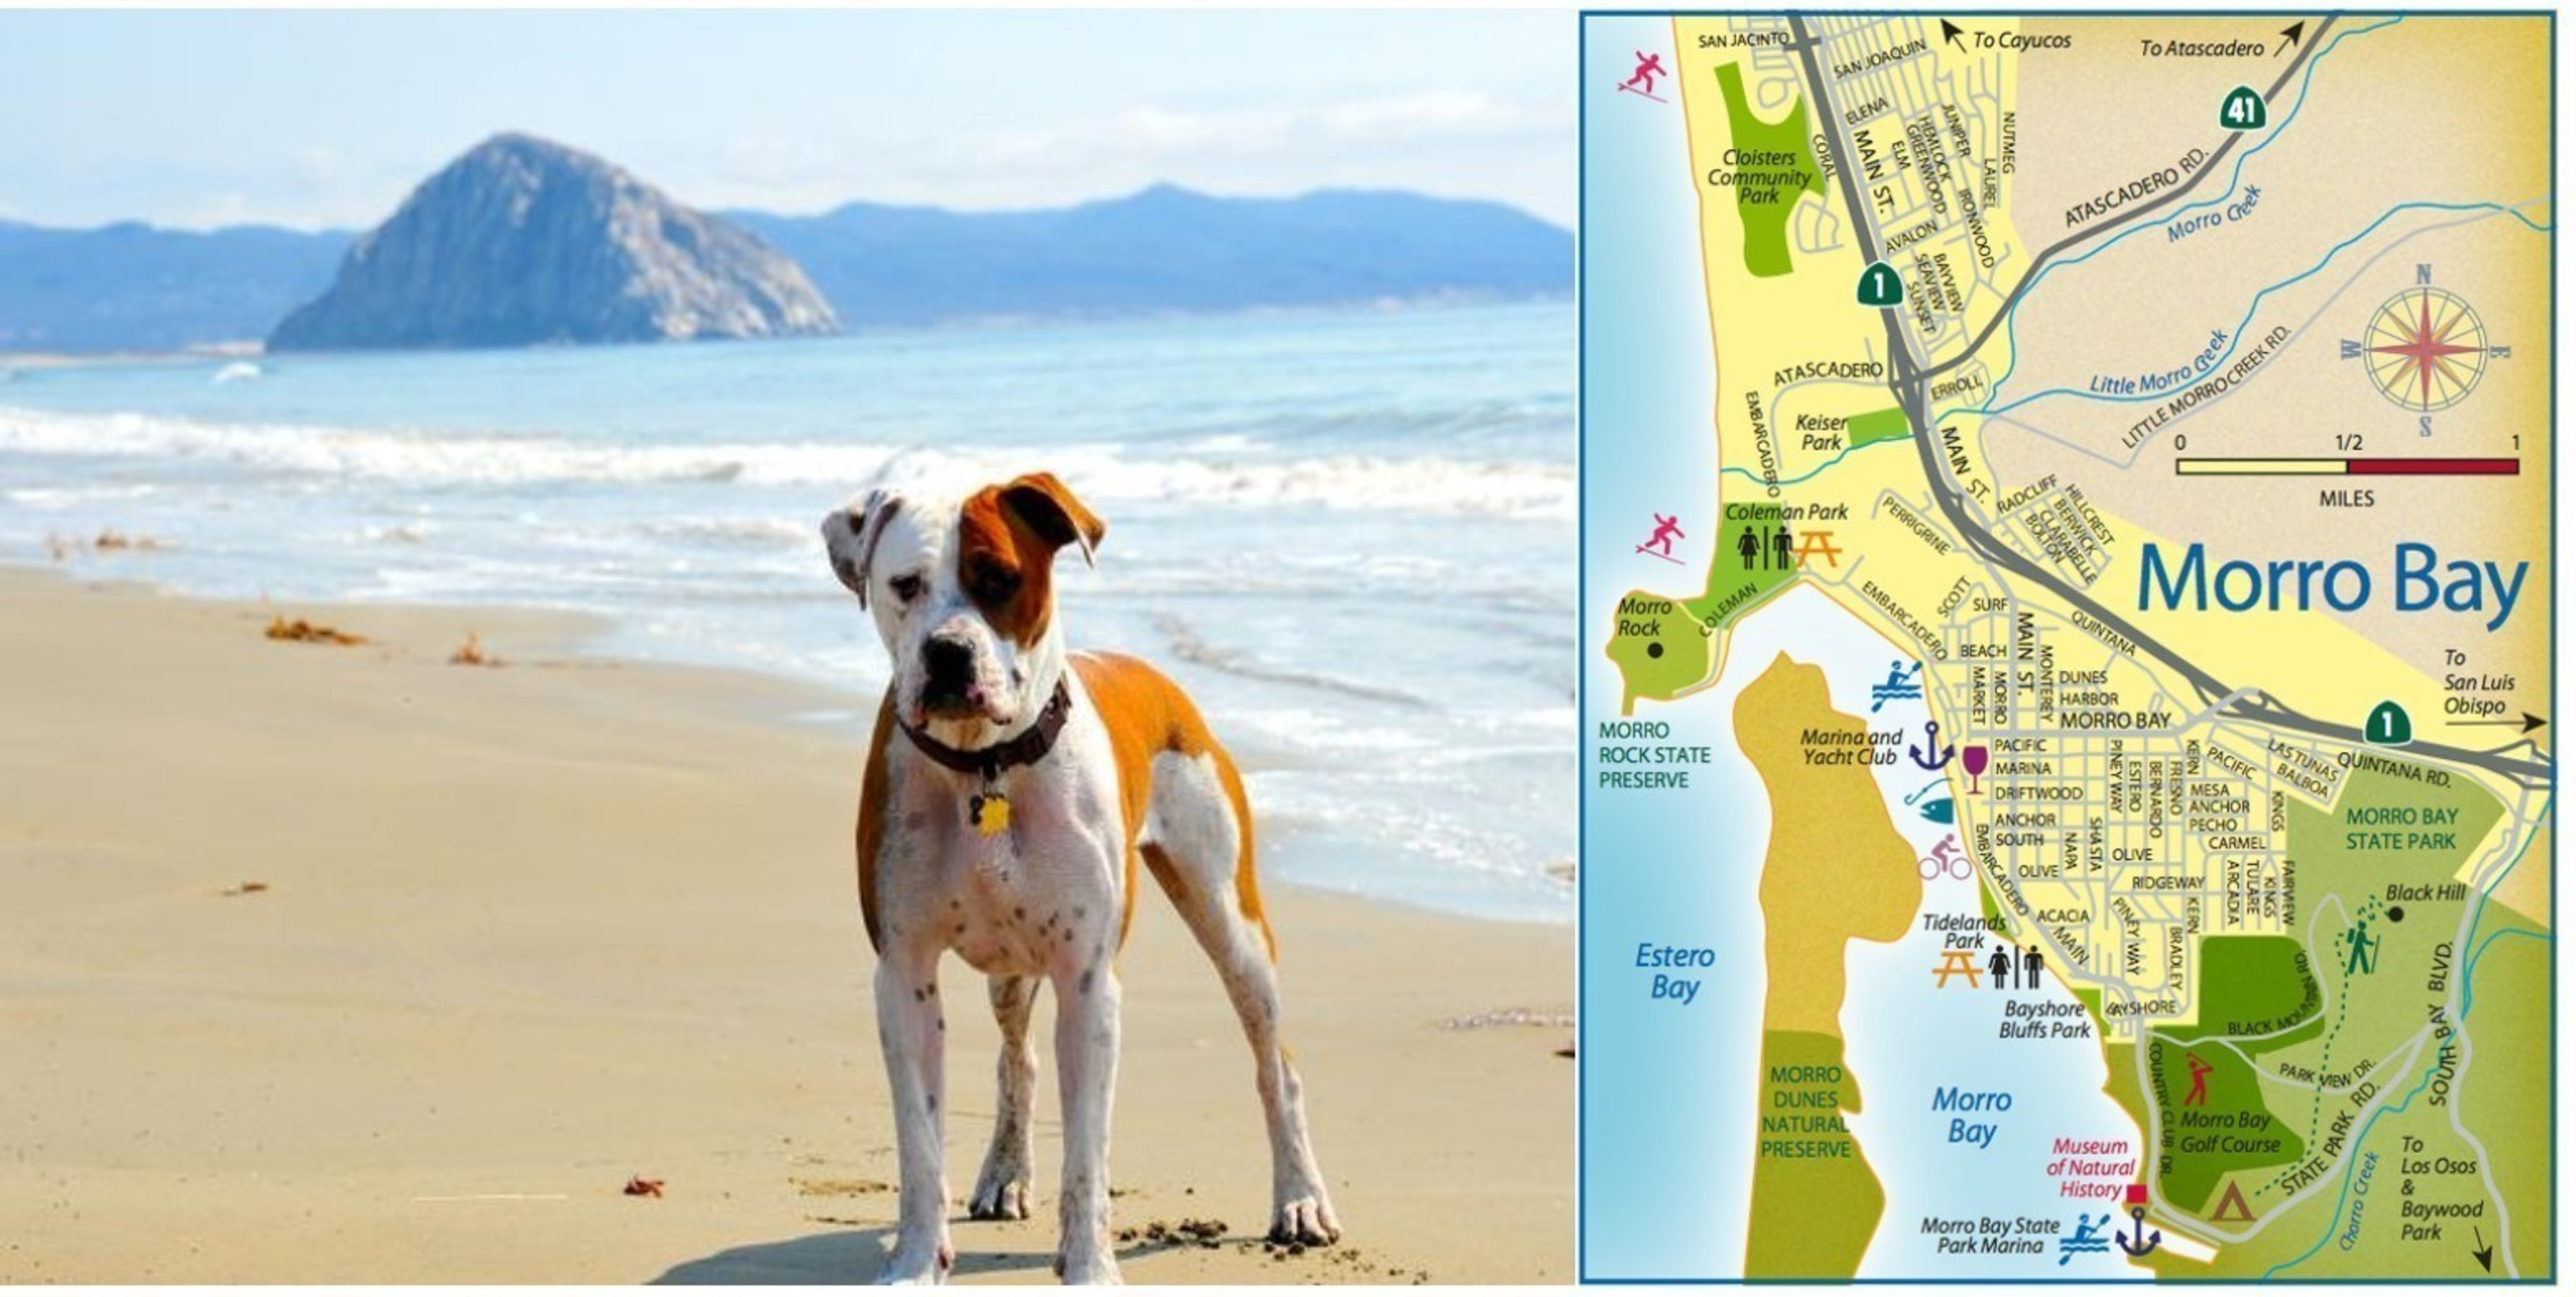 Burn Away Your Holiday Calories Rain or Shine in Morro Bay, CA and Find What's New this Winter and